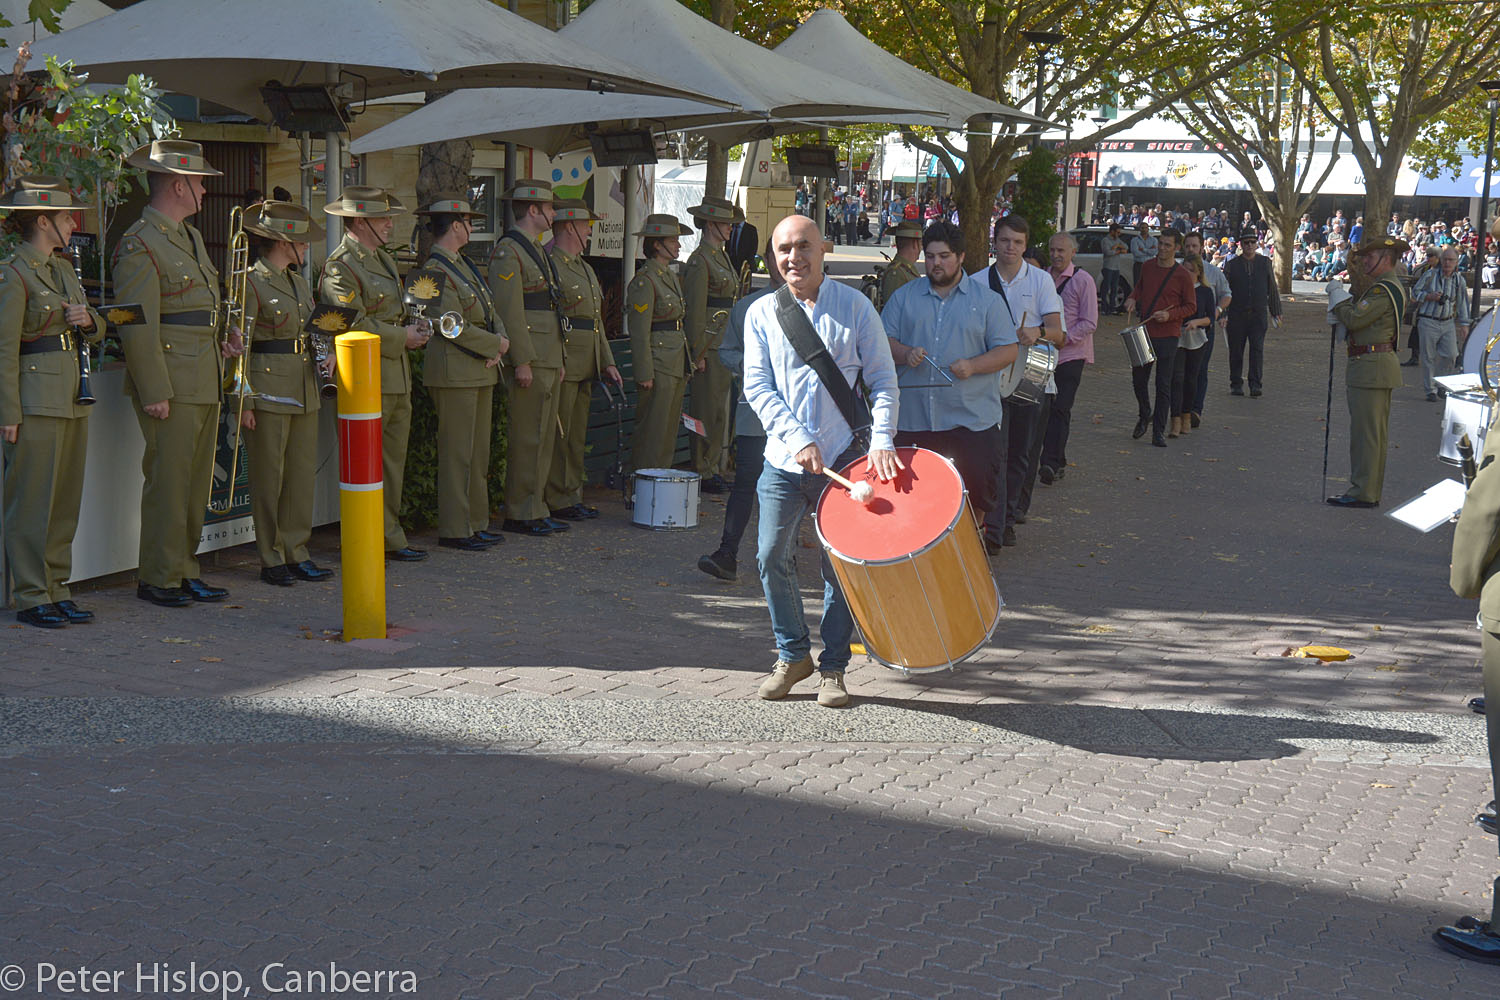 CIMF 2016 - Concert 14 - Garema Place. Tambuco Percussion and Festival Drummers parade through the RMC Band